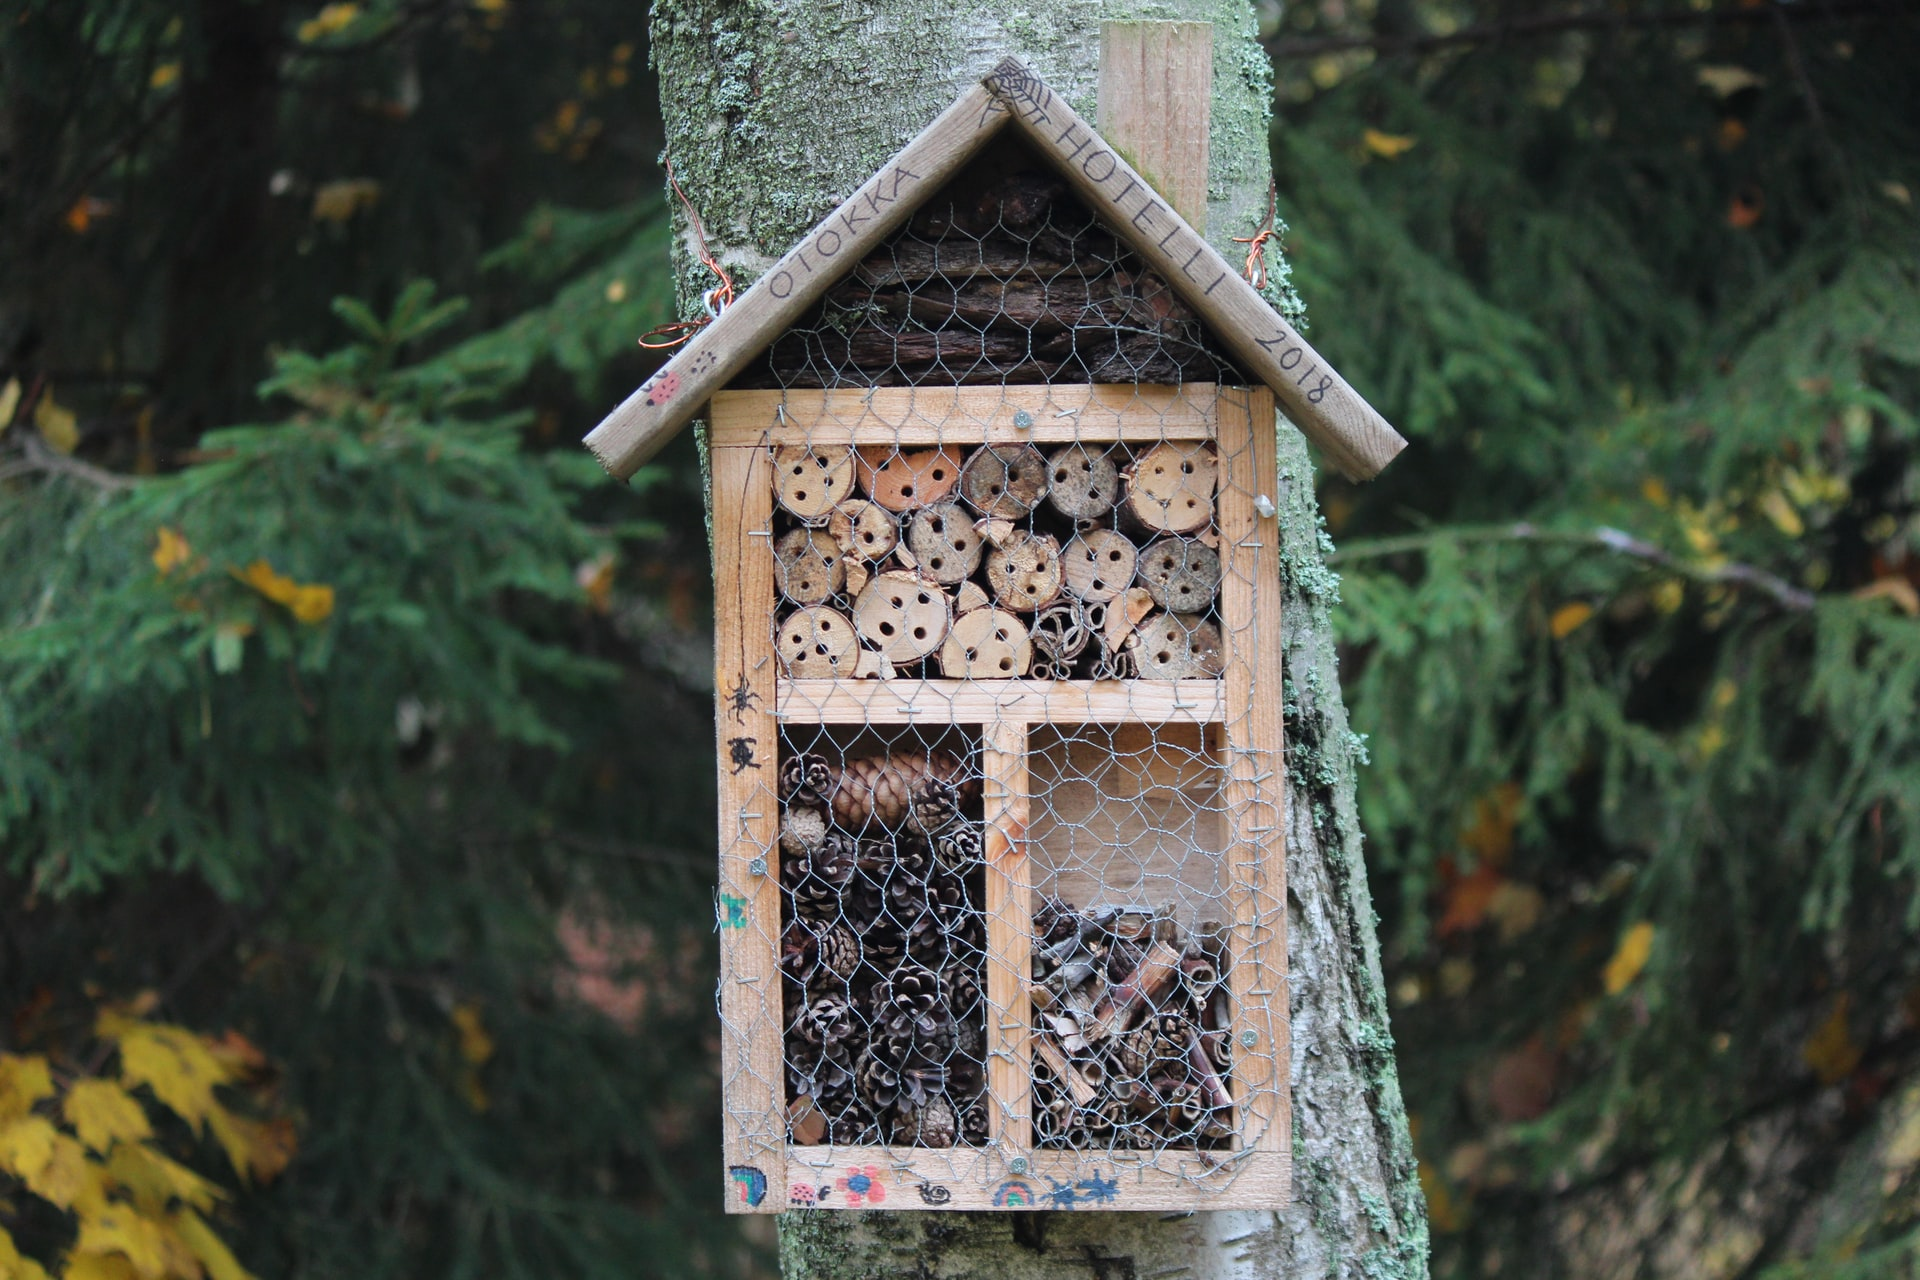 brown wooden insect hotel filled with natural materials attached to a tree